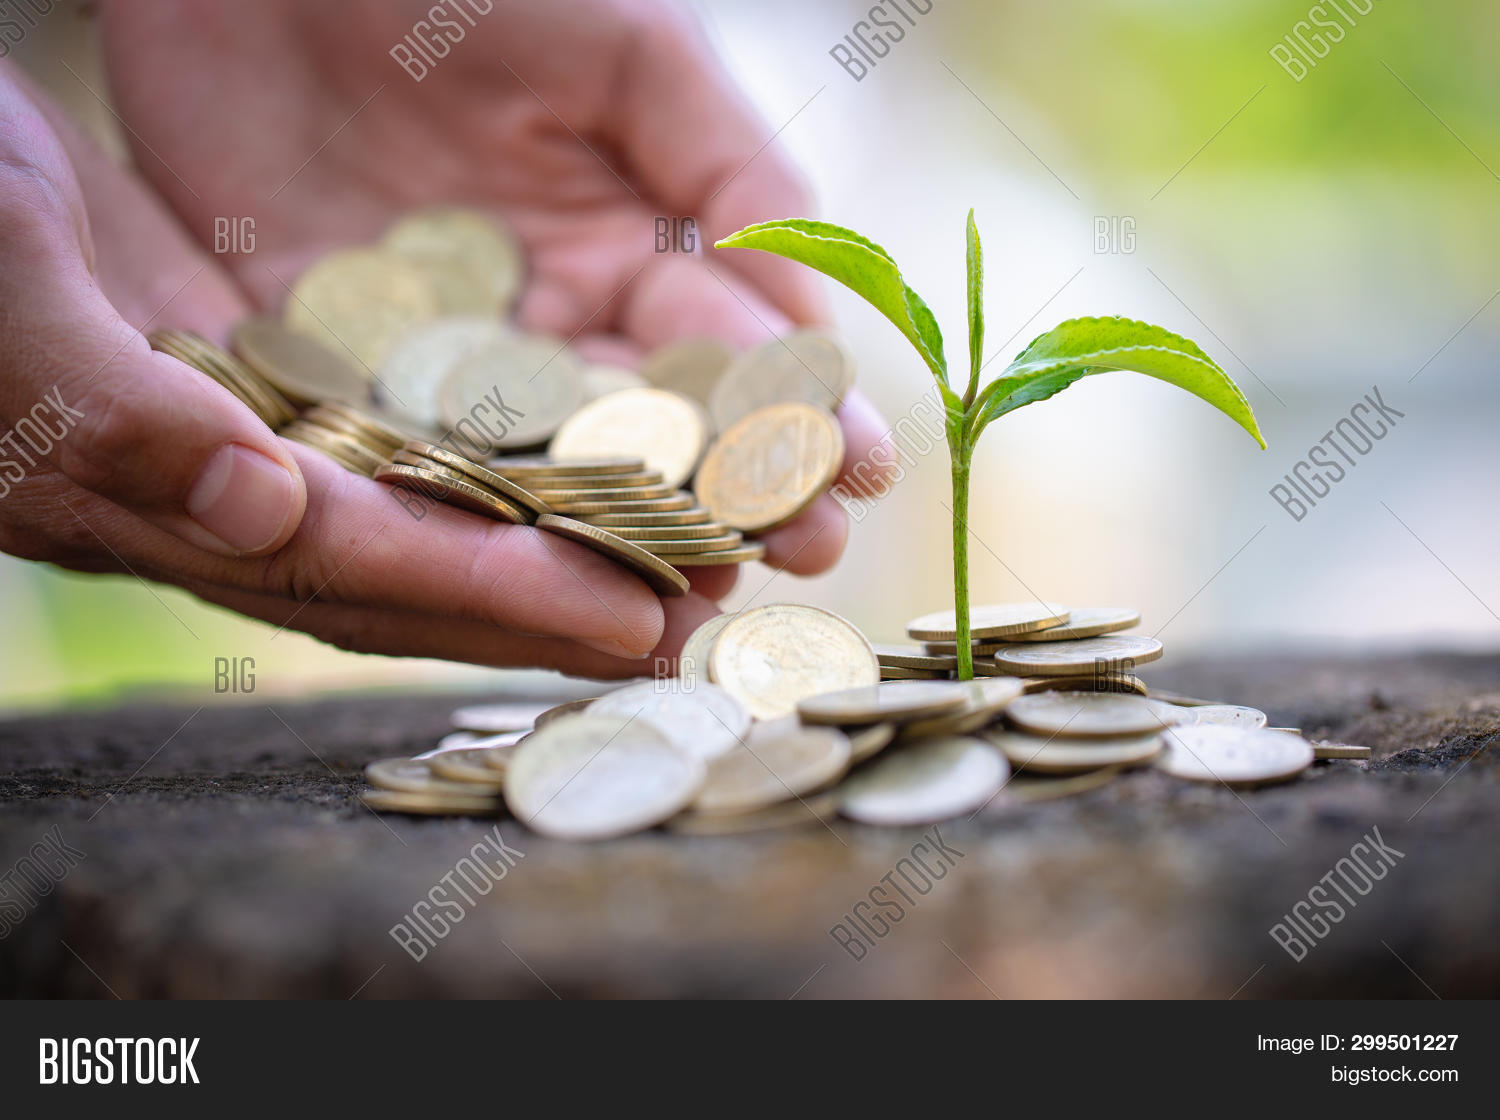 accounting,background,bank,banking,benefit,business,care,cash,coin,concept,corporate,currency,deposit,development,dollar,earnings,economic,economy,environment,finance,financial,fund,gold,green,grow,growing,growth,income,interest,invest,investment,leaf,loan,money,nature,pile,plant,profit,rich,save,saving,seed,stack,success,symbol,tree,wealth,white